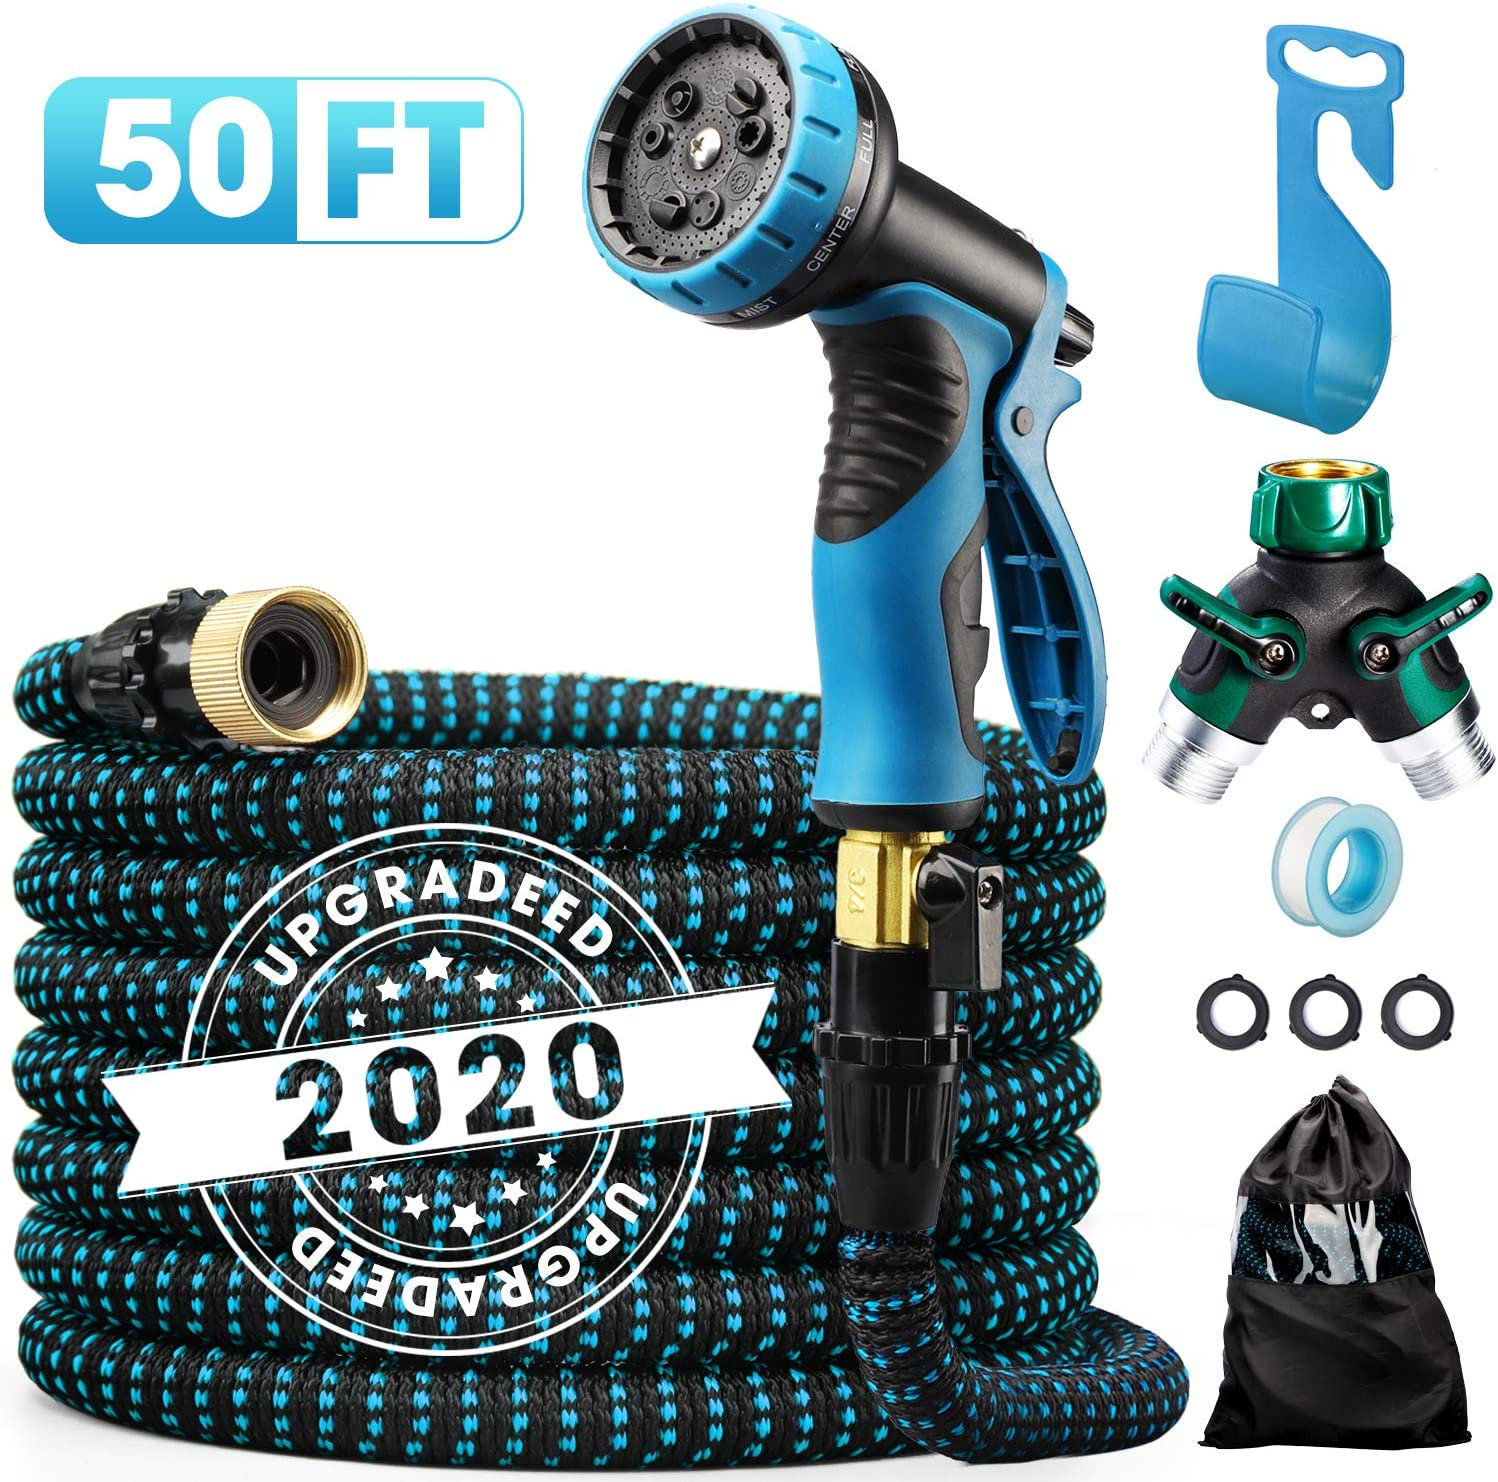 "Delxo 2020 Upgrade 50FT Expandable Garden Hose Water Hose with 9-Function High-Pressure Spray Nozzle, Heavy Duty Flexible Hose, 3/4"" Solid Brass Fittings Leakproof Design"